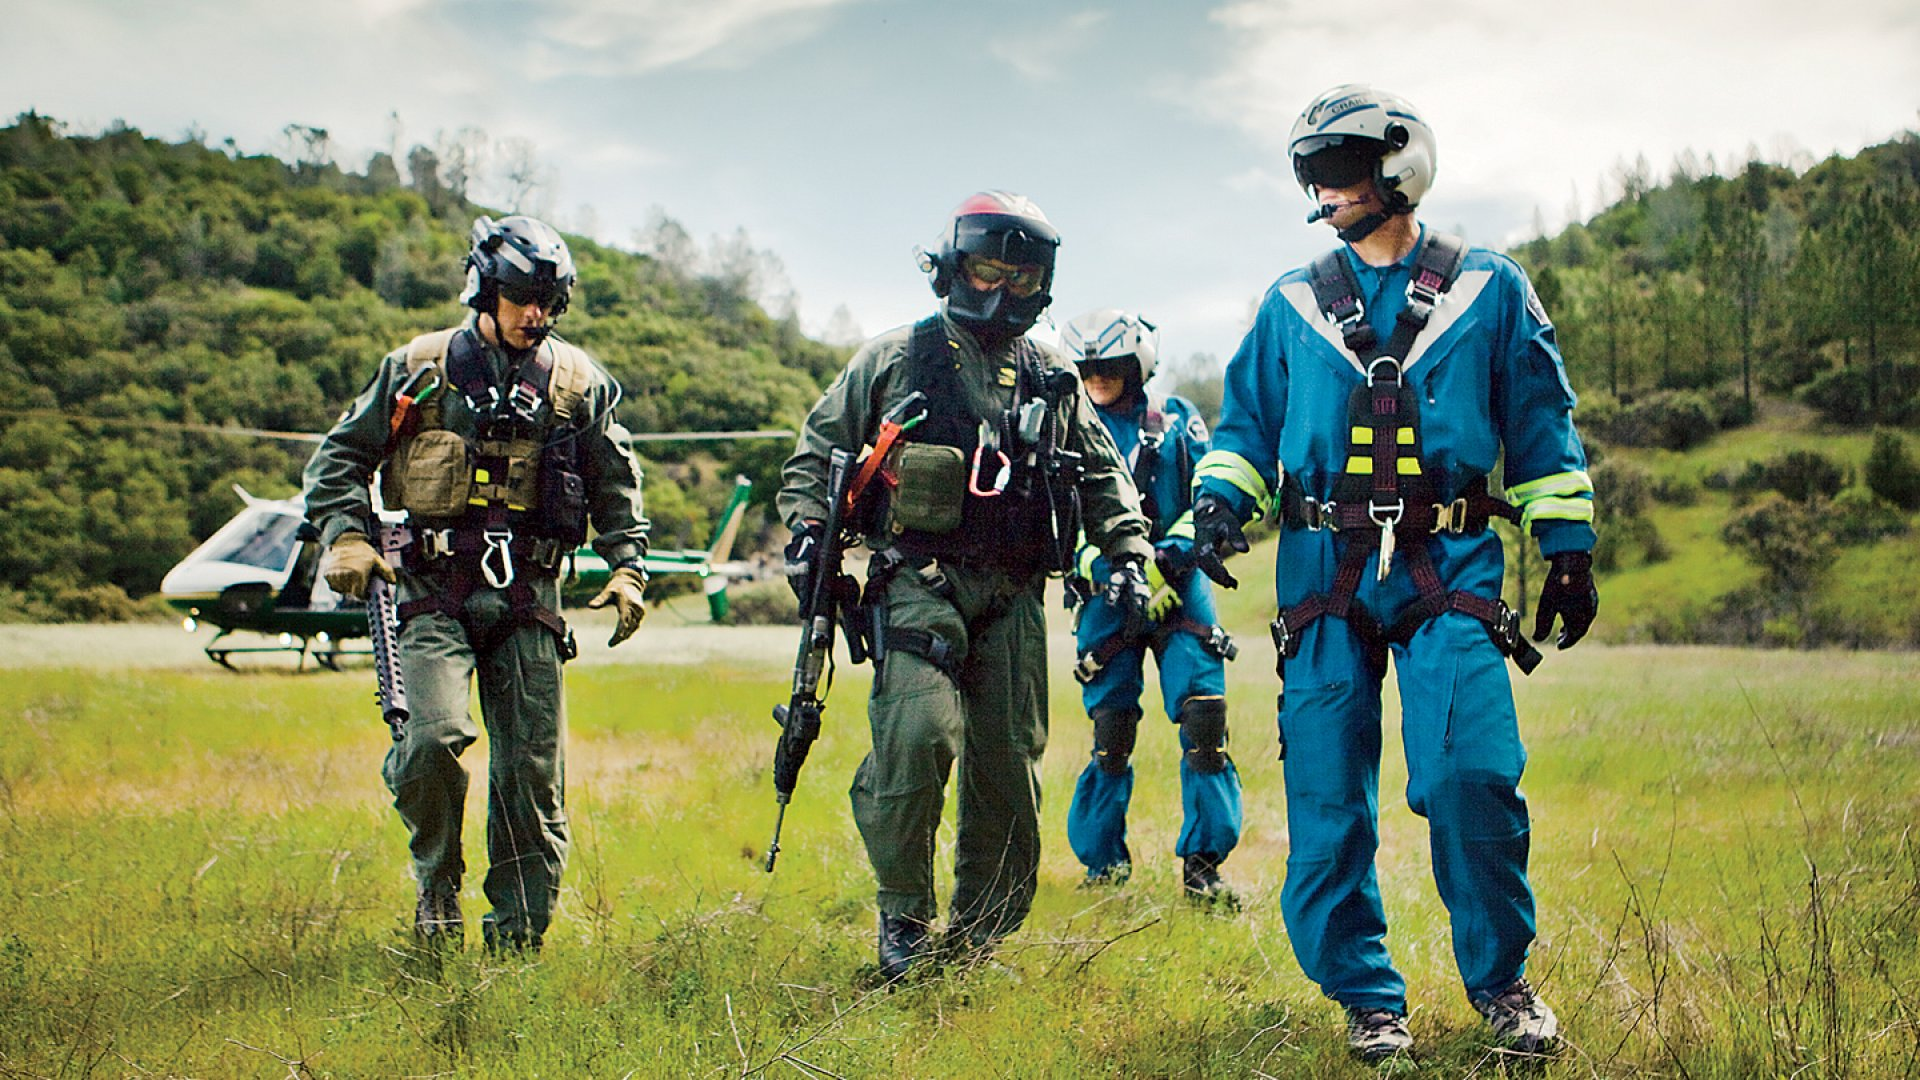 This Company Trains First Responders to Stage Helicopter Rescues